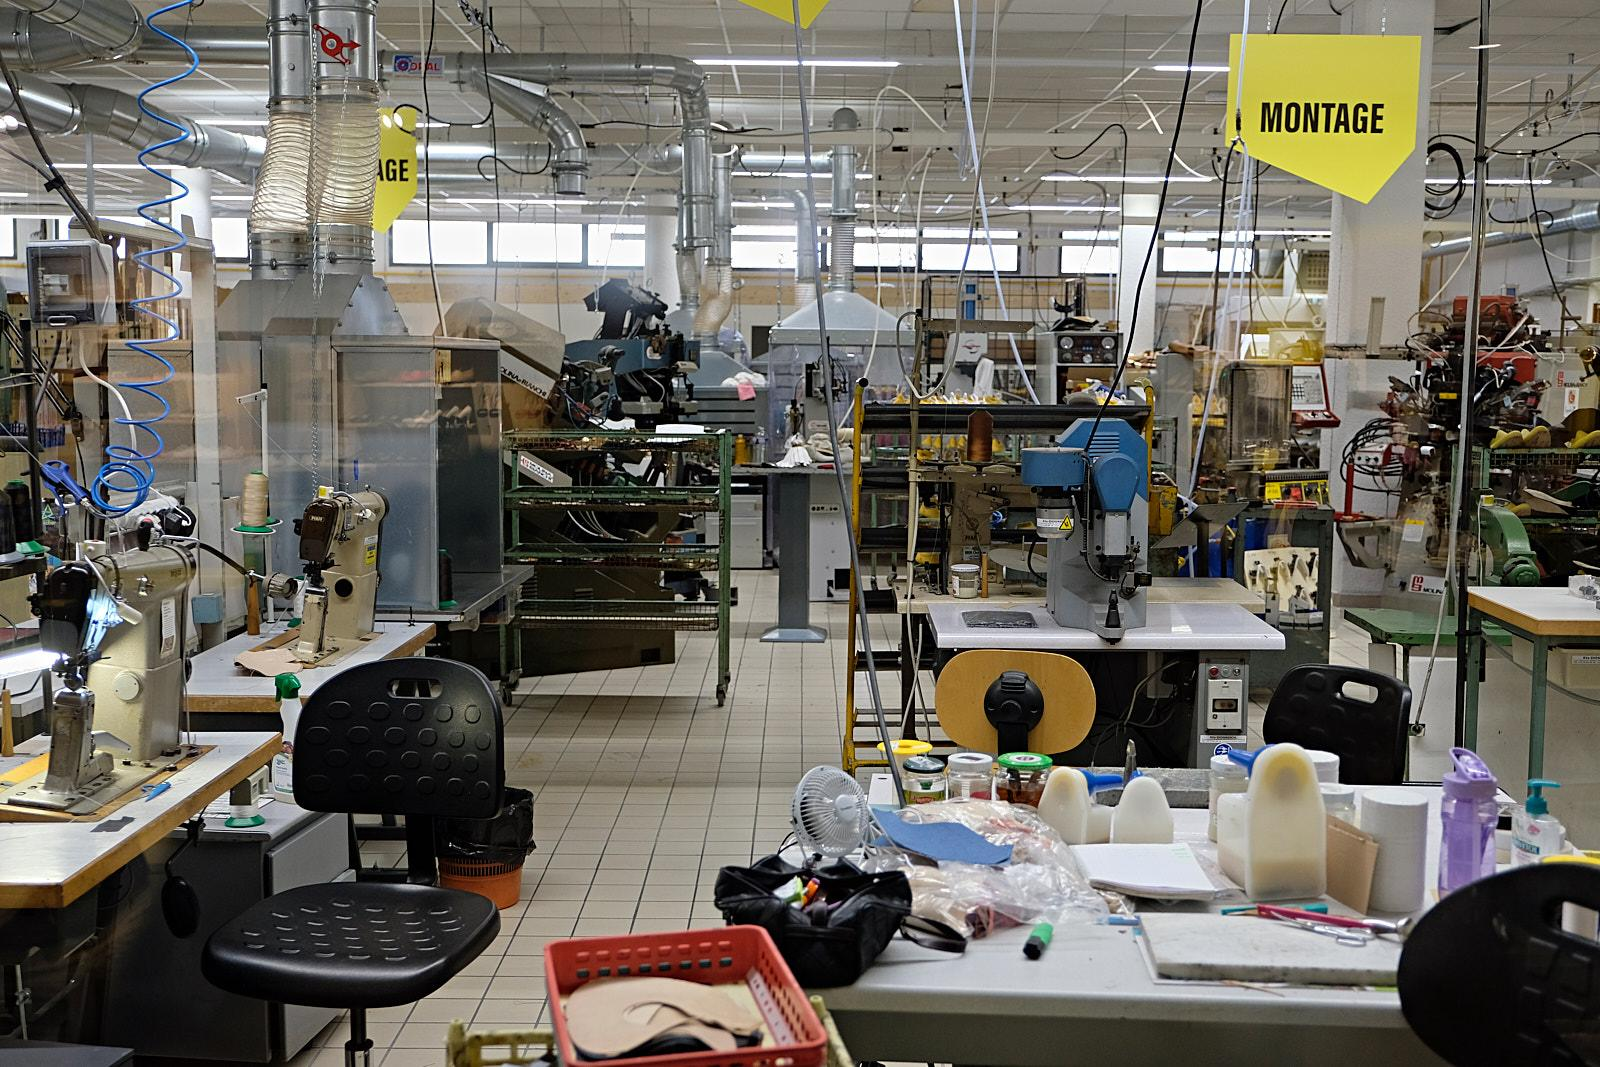 Overview of the workshop in the cite de la chaussure.